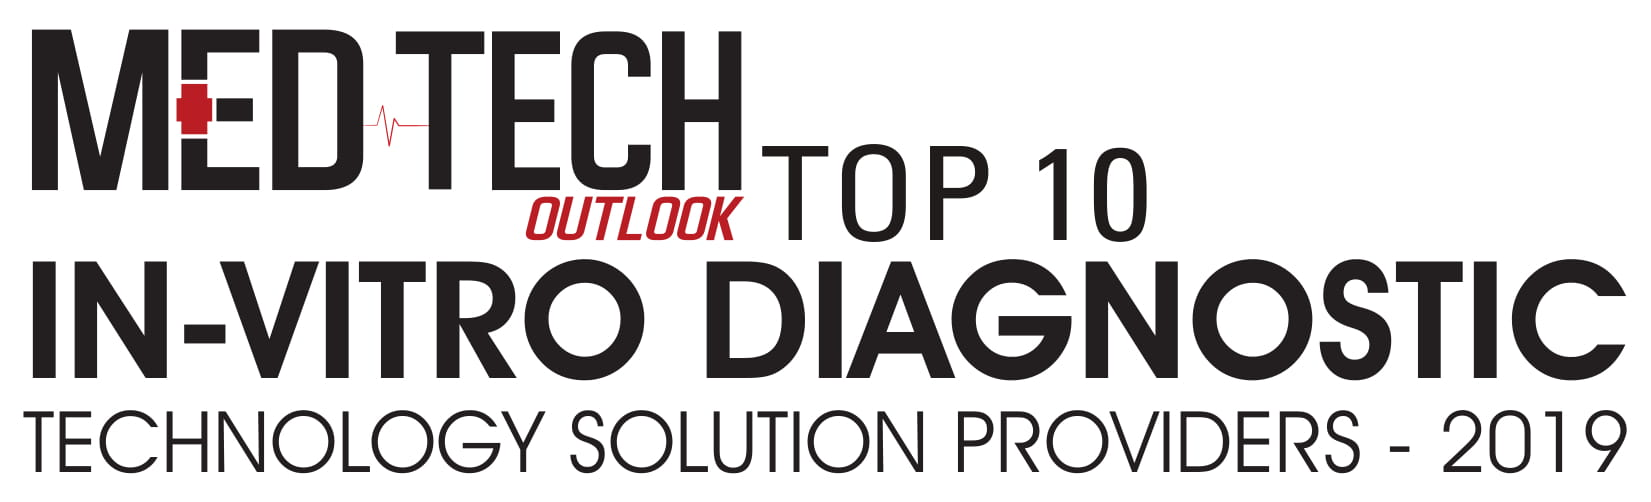 Top 10 In-Vitro Diagnostic Technology Solution Providers 2019-1.jpg